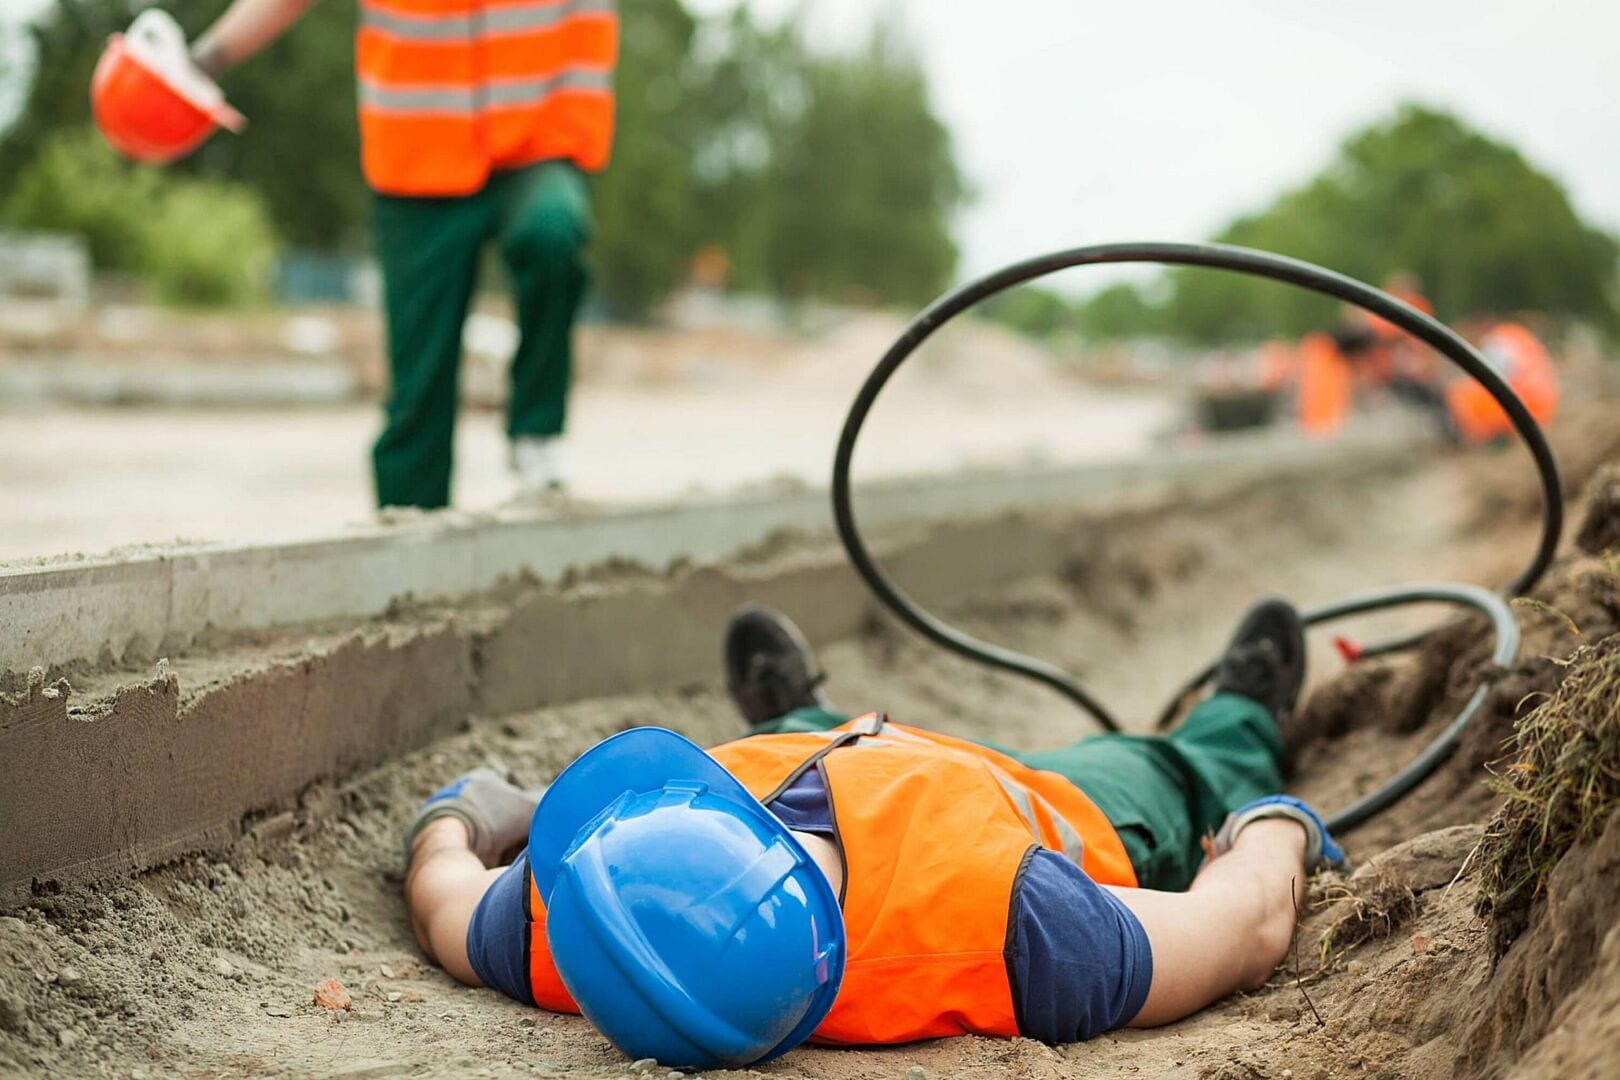 Garland Construction Accident Lawyer